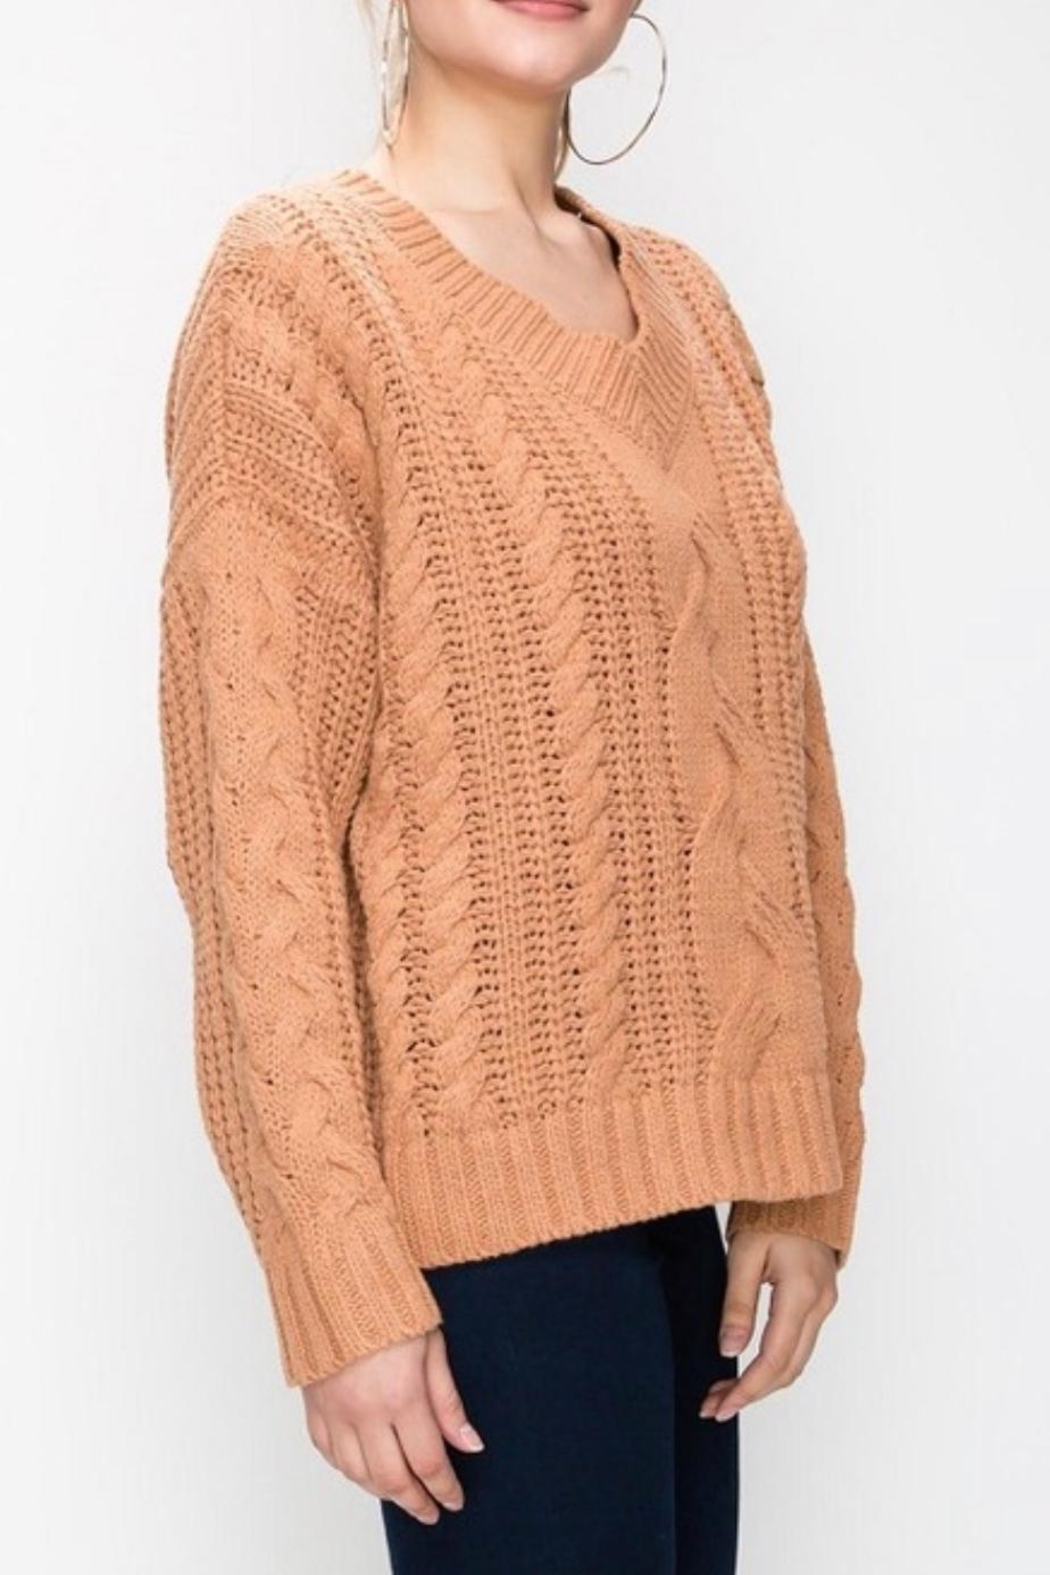 Favlux Apricot Cable-Knit Sweater - Side Cropped Image